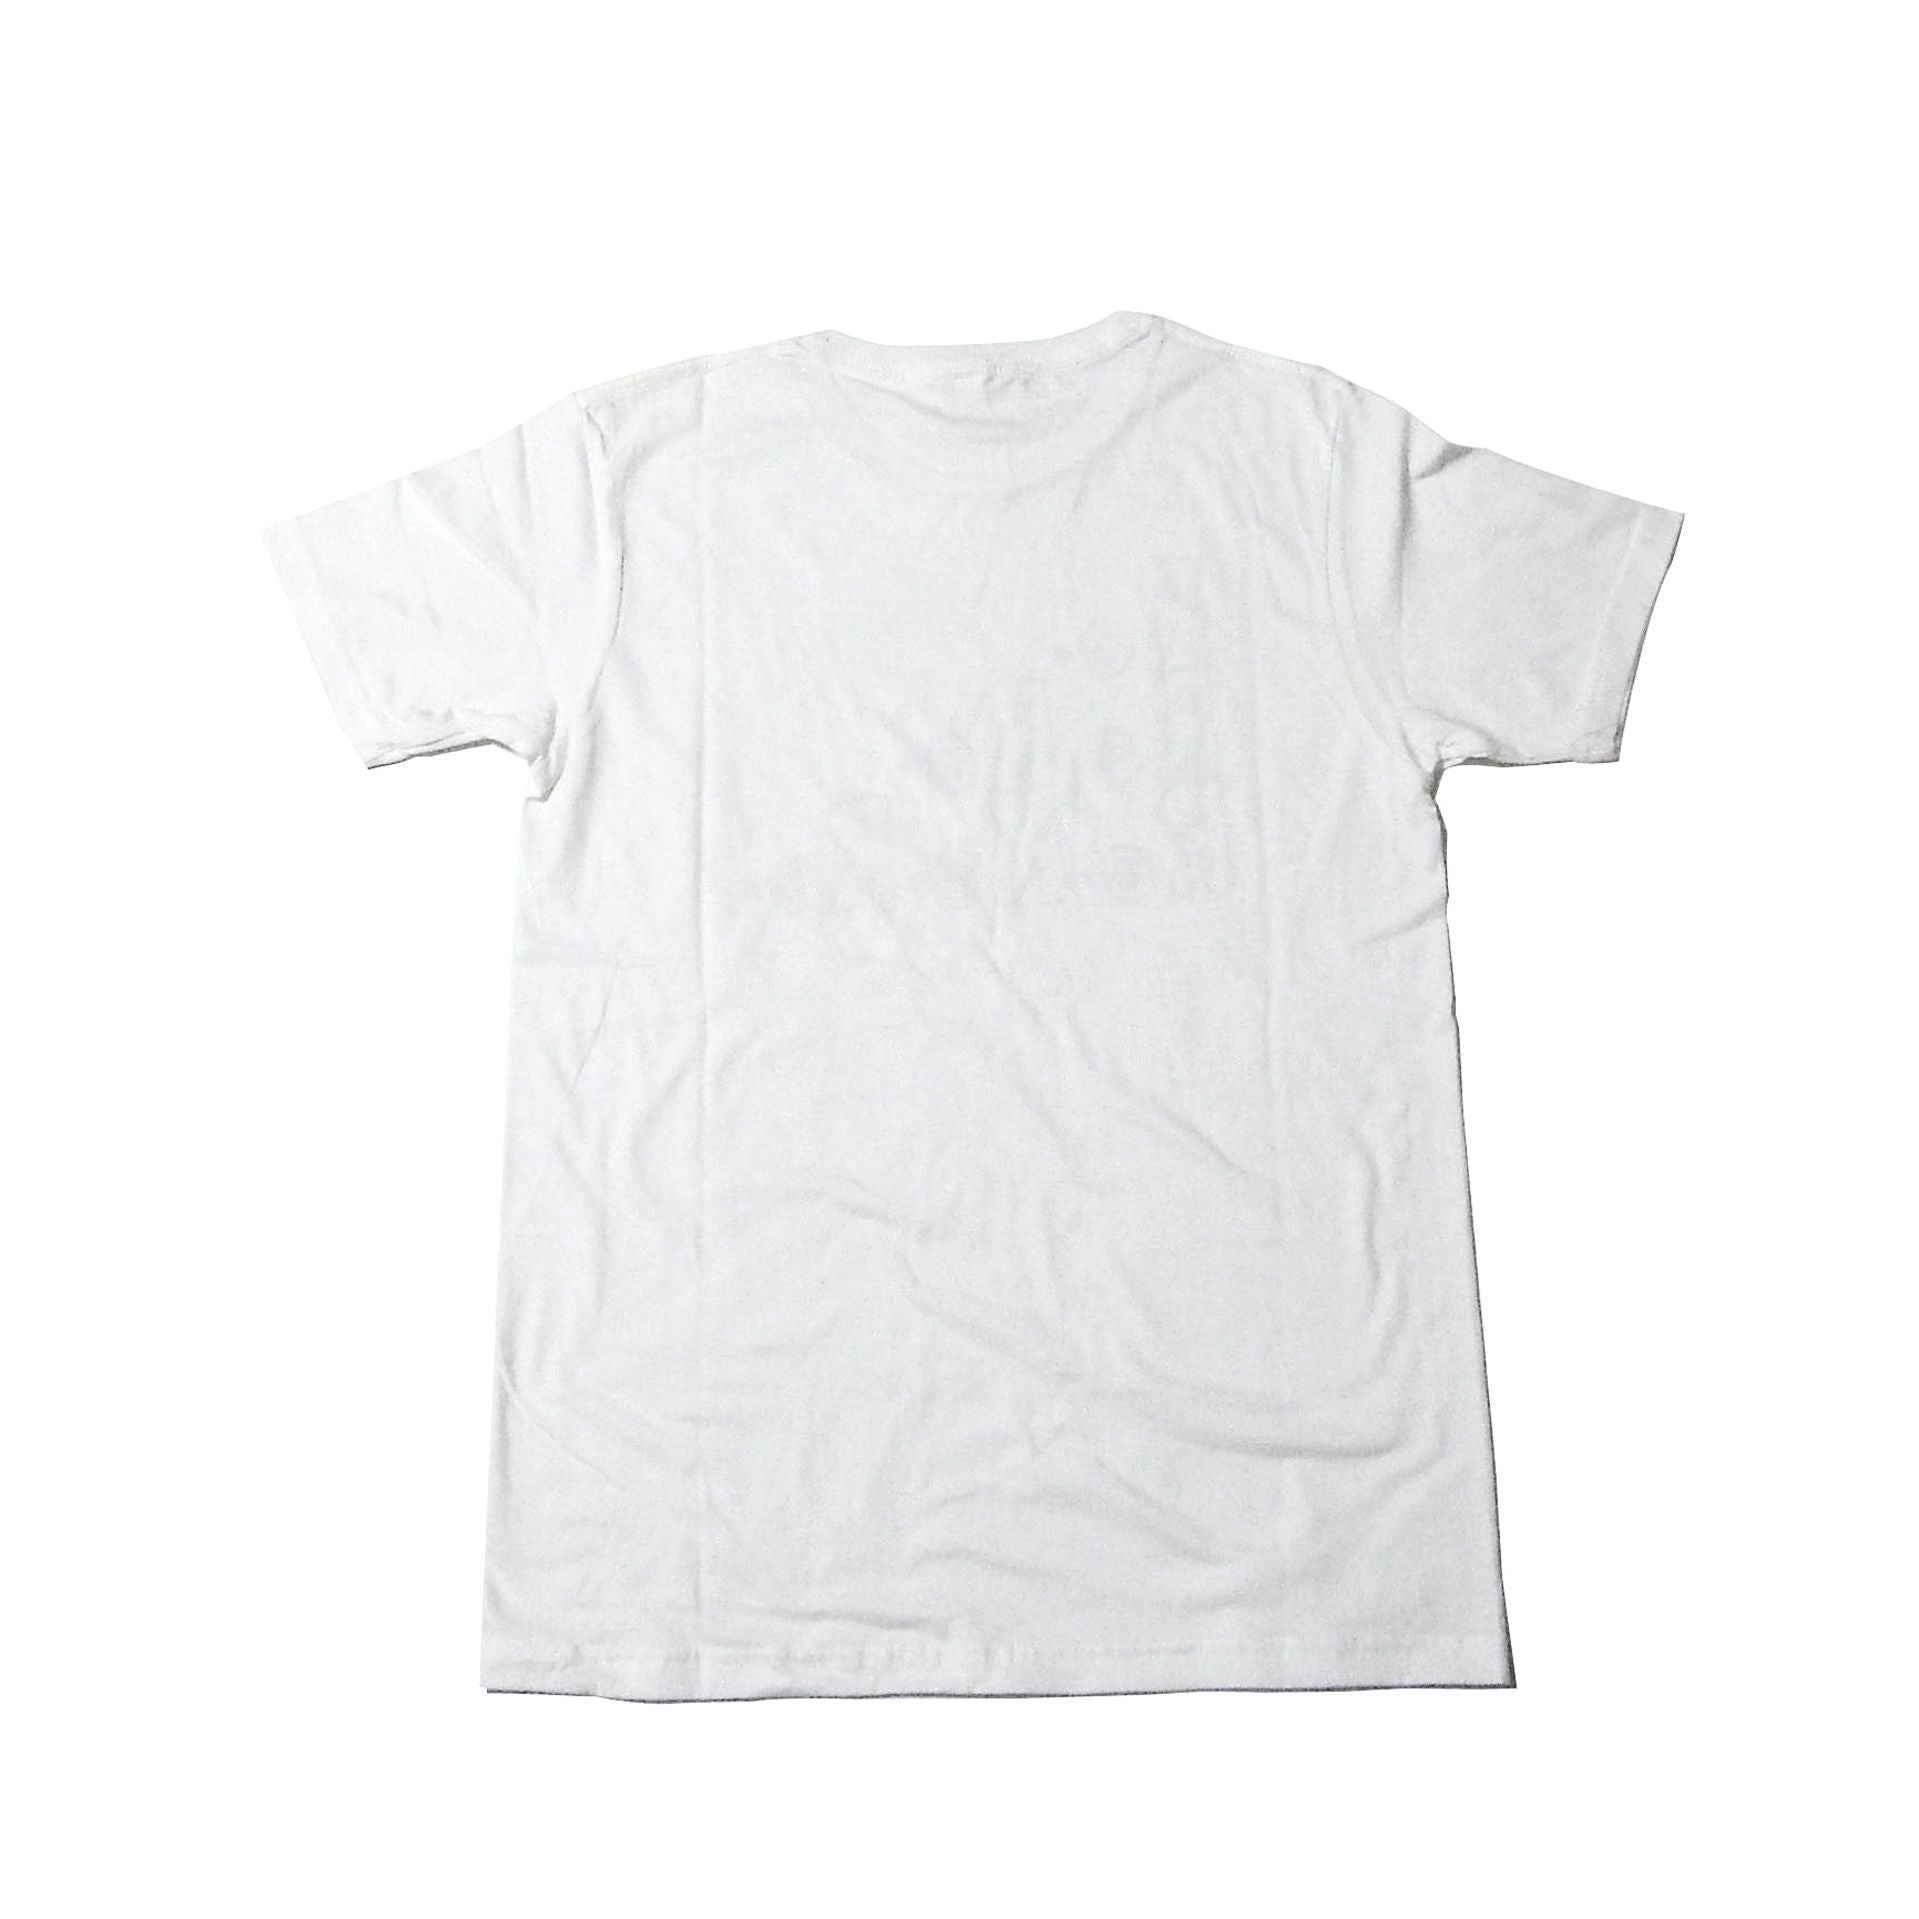 T-SHIRT CITY/WHITE